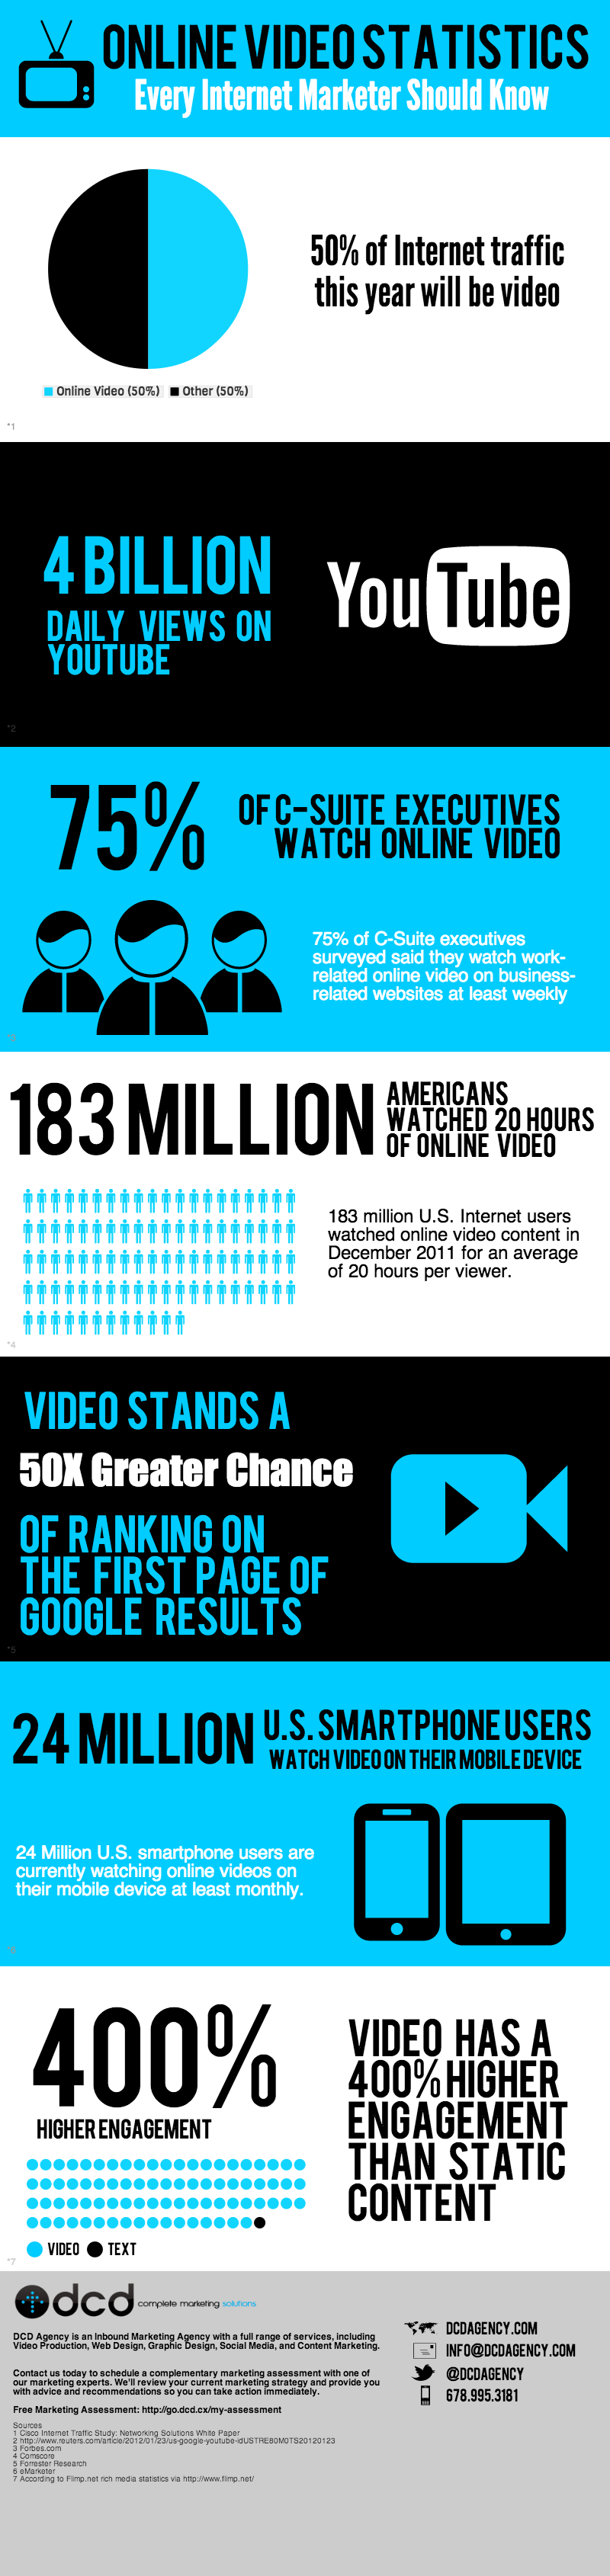 Online Video Statistics Every Marketer Should Know